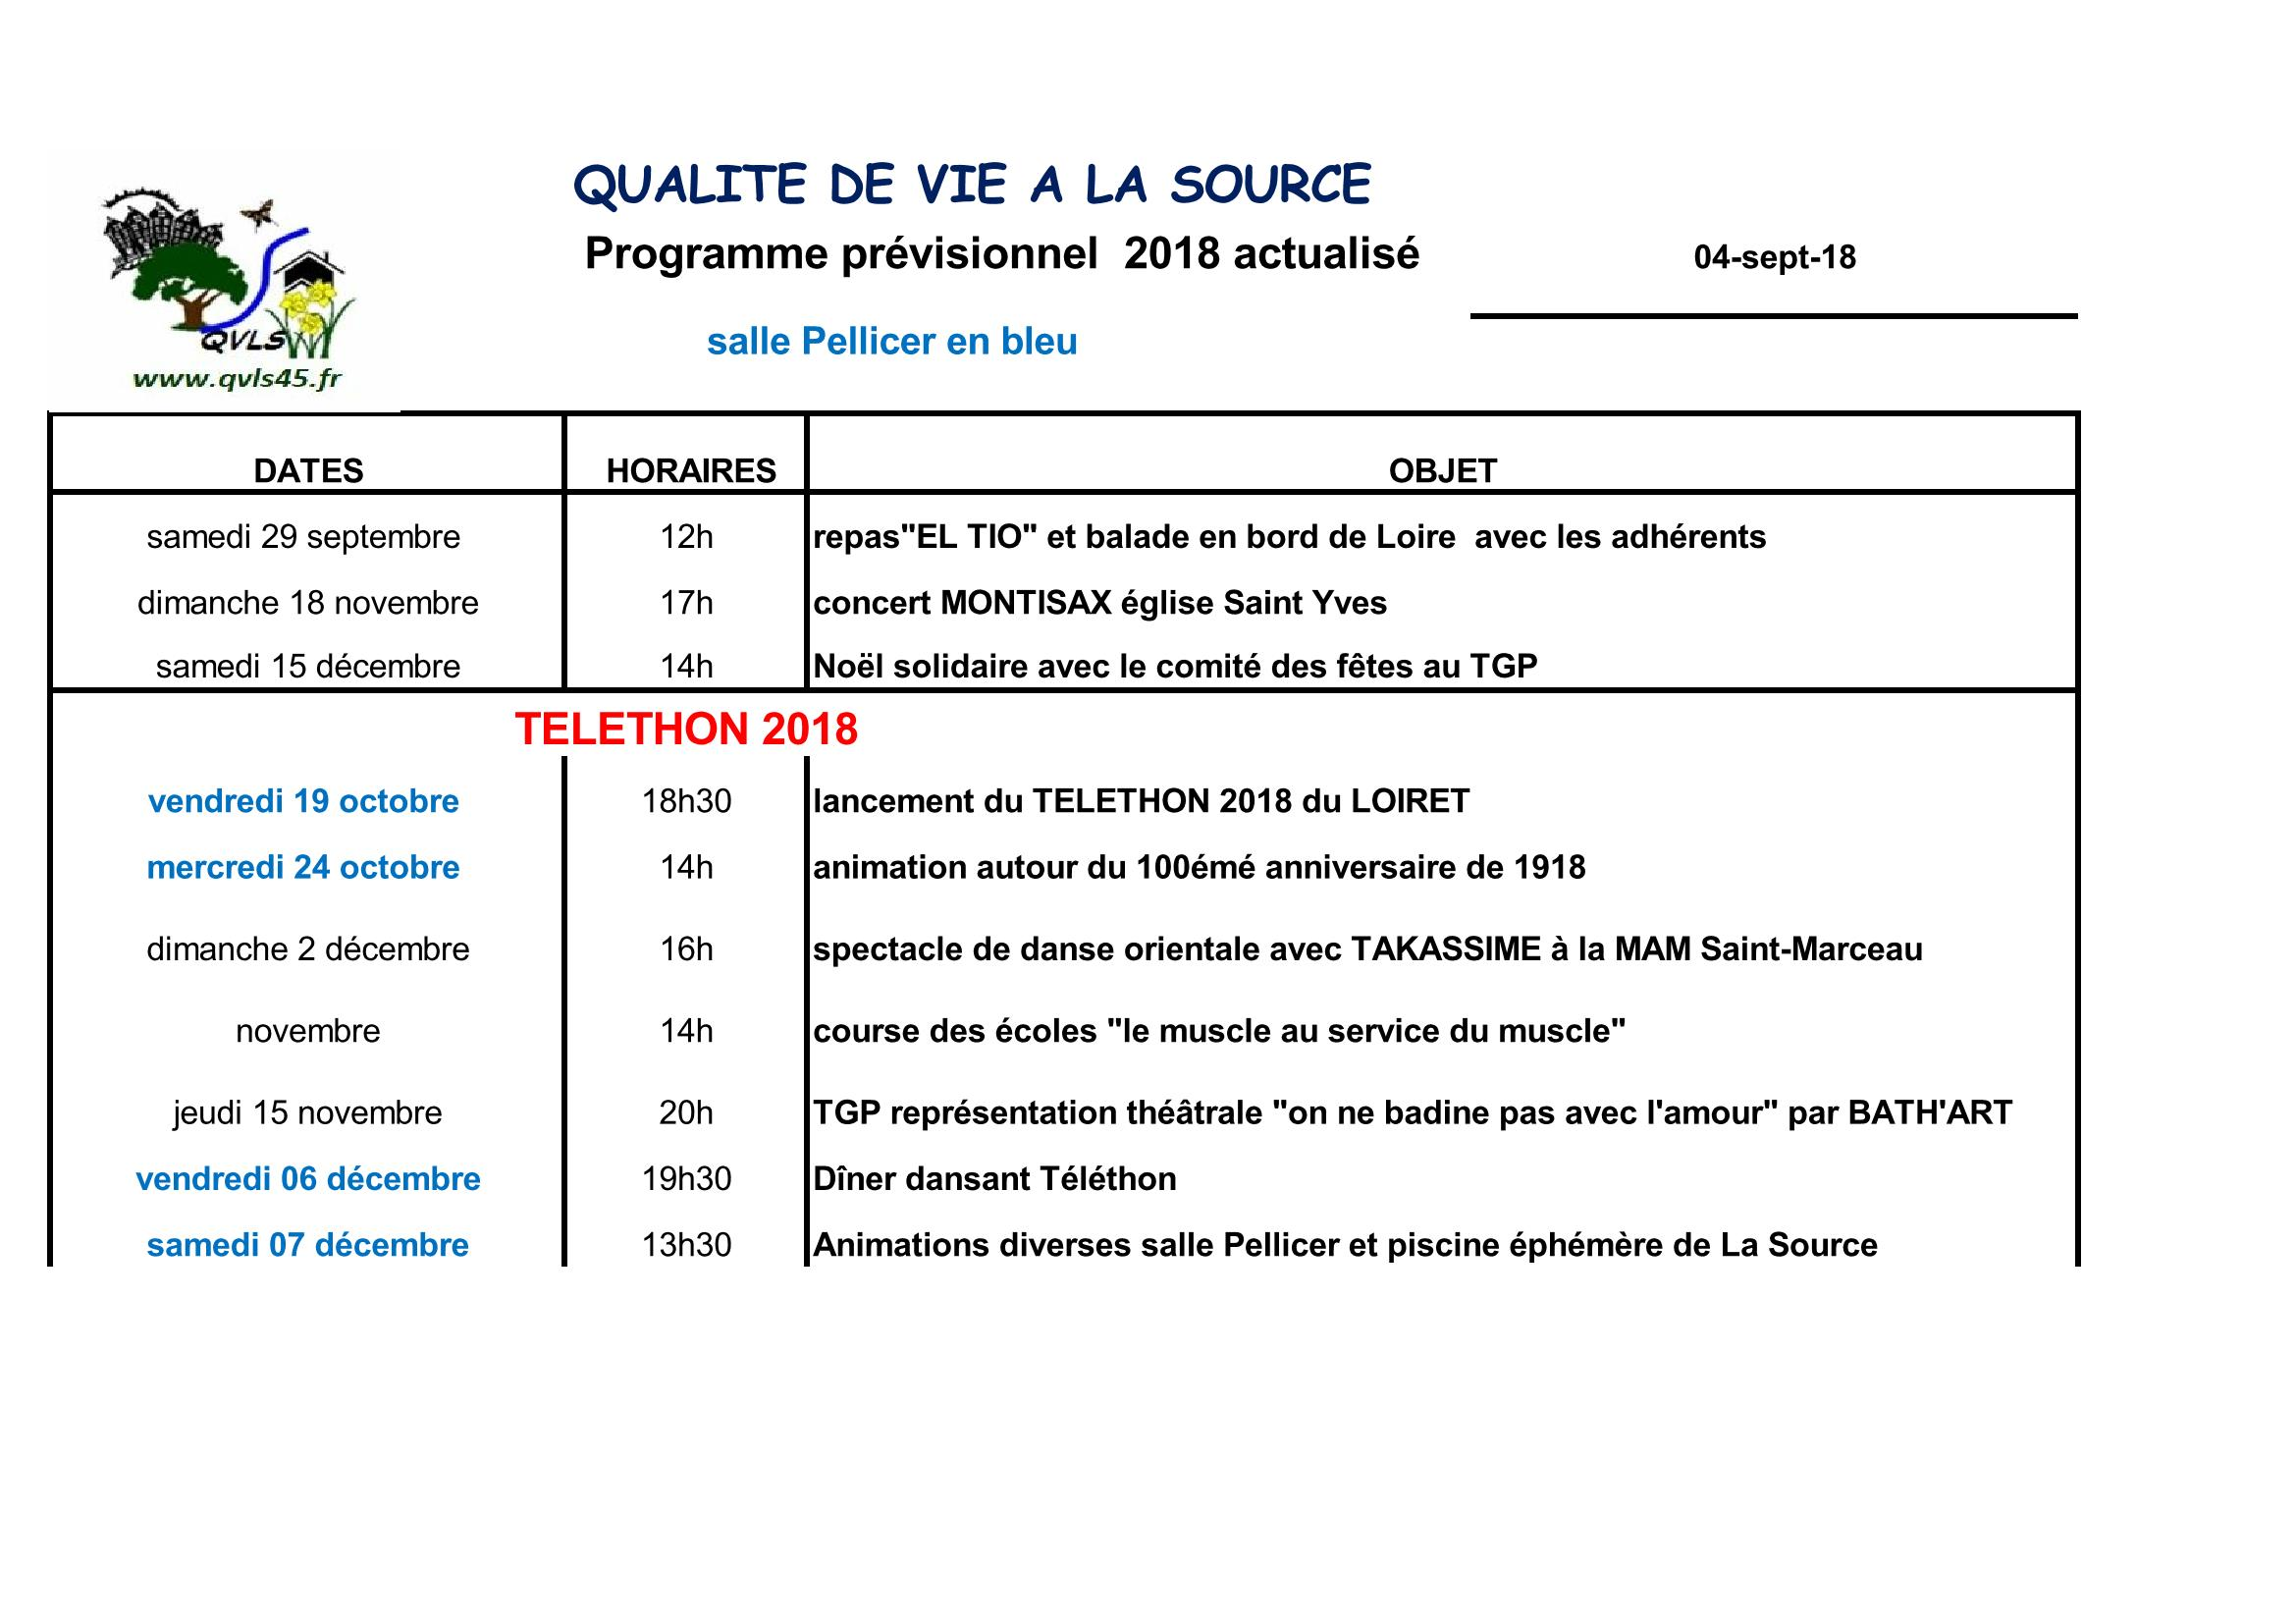 QVLS_programme_preevisionnel_actualisee_sept_2018_Page_1.jpeg